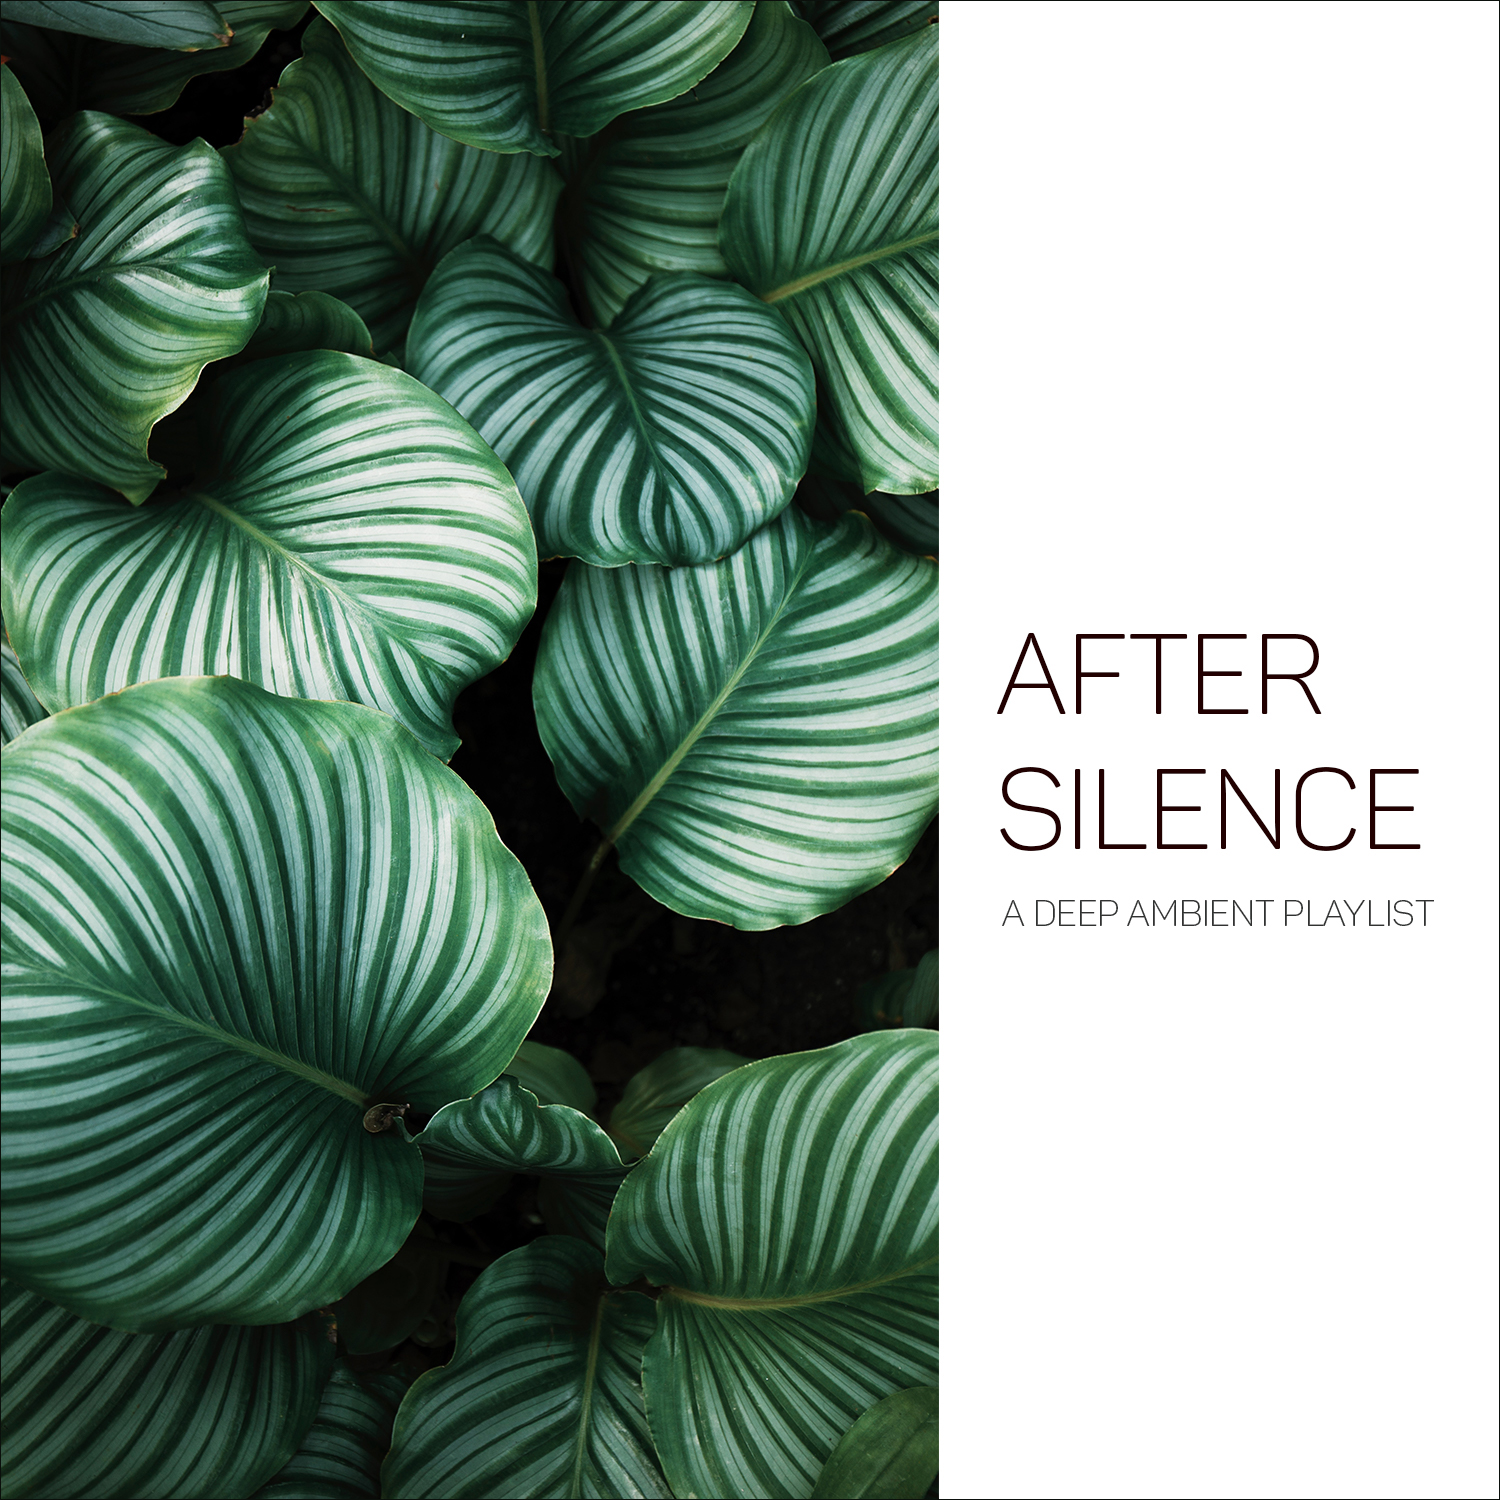 After Silence (A Deep Ambient Playlist)